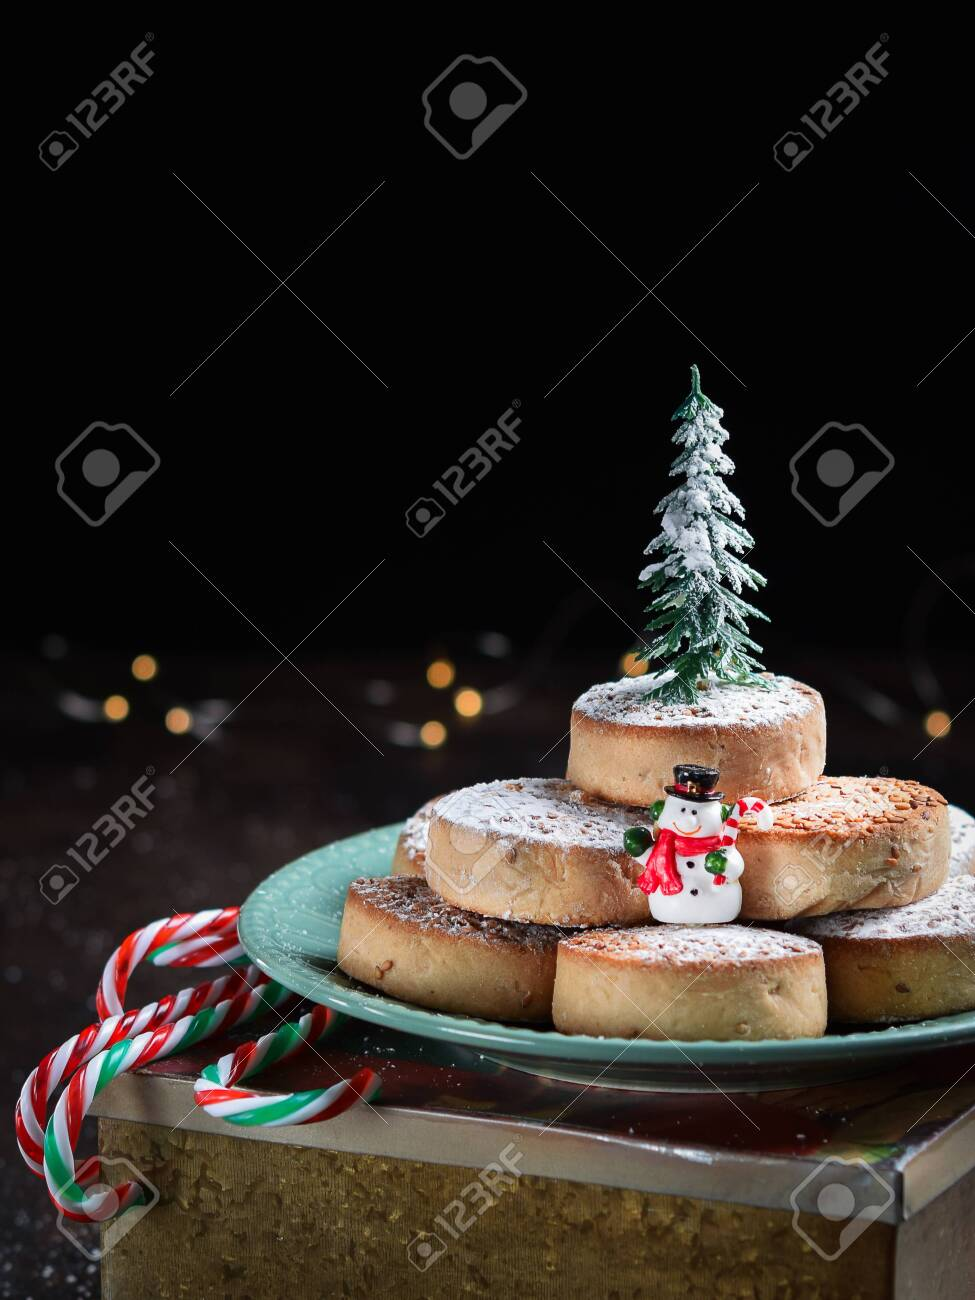 Typical Spansih Christmas Cookies Polvorones, mantecados, with almonds on dark wooden background with space for text. Christmas and New Year celebration concept. Holiday decoration. - 129540455